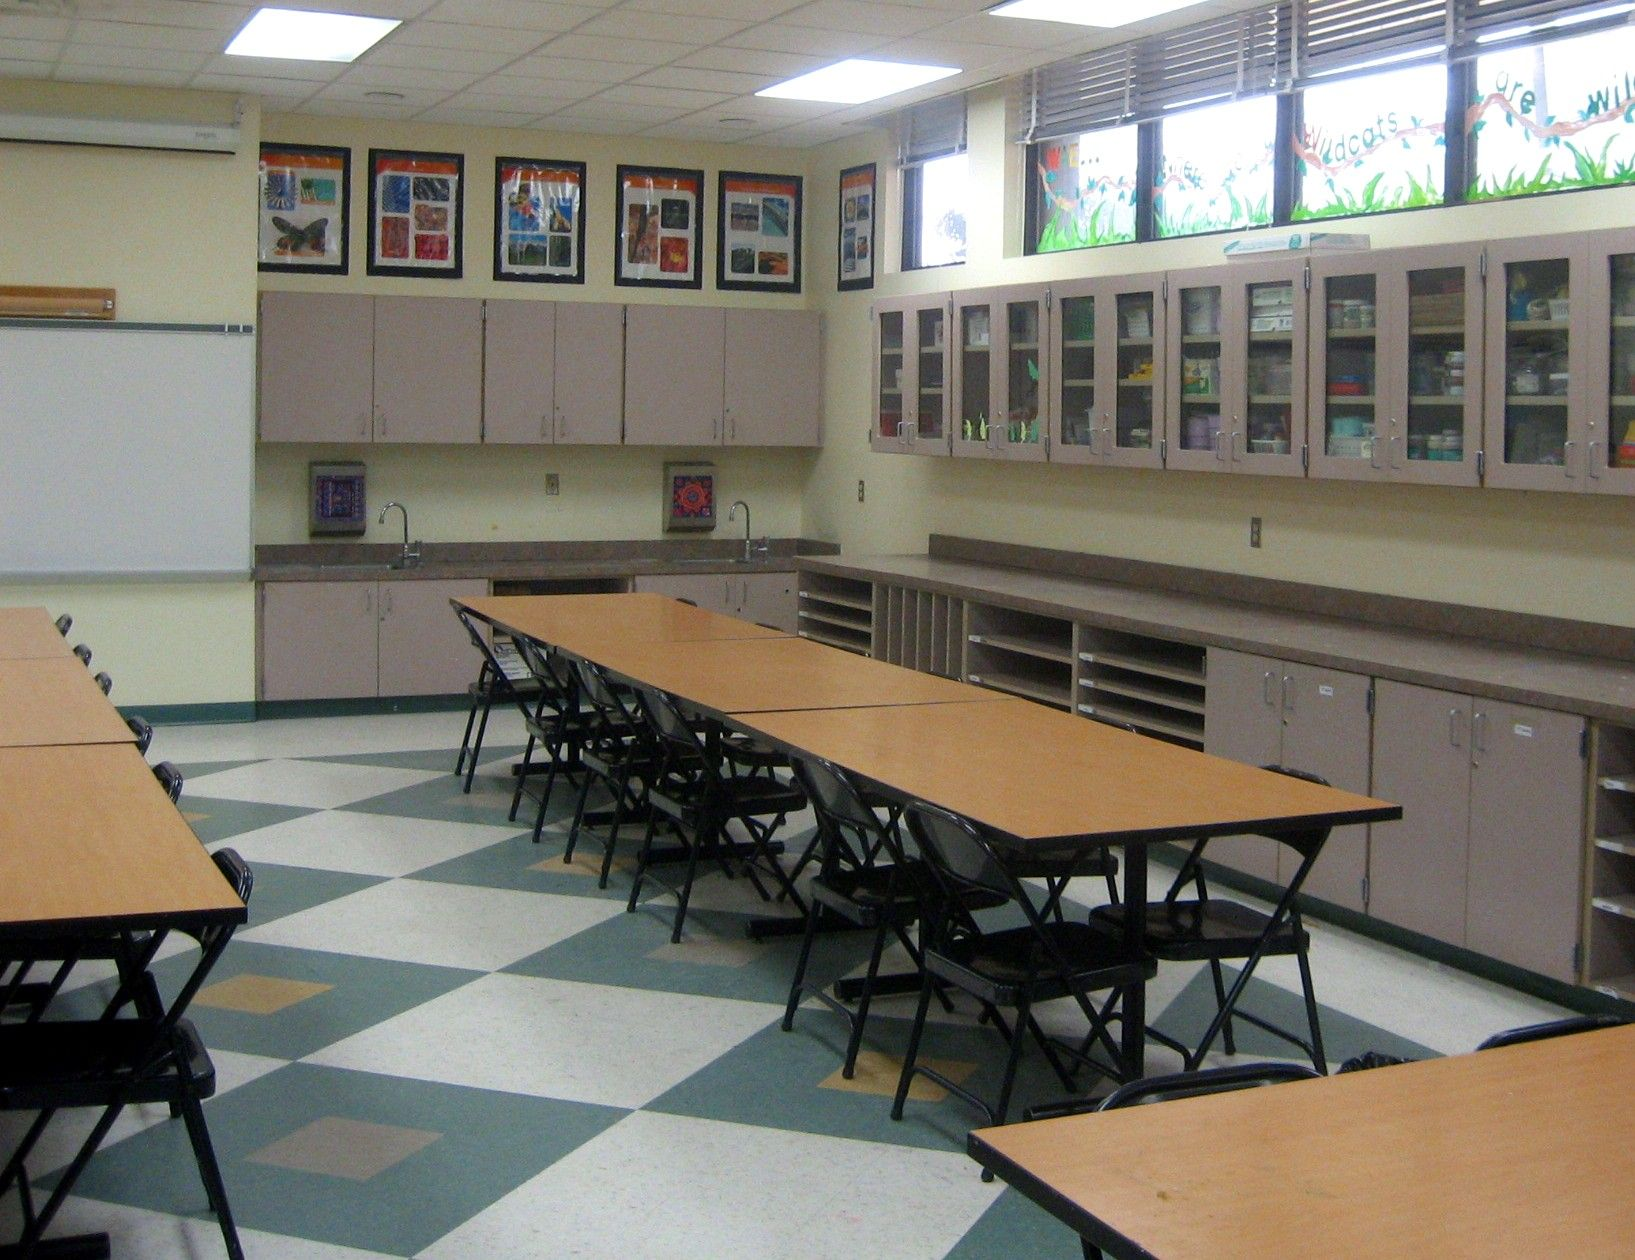 Pin By Meche Farah On Art Room And Teaching Ideas Classroom Decor Entry Doors Table Arts live education room